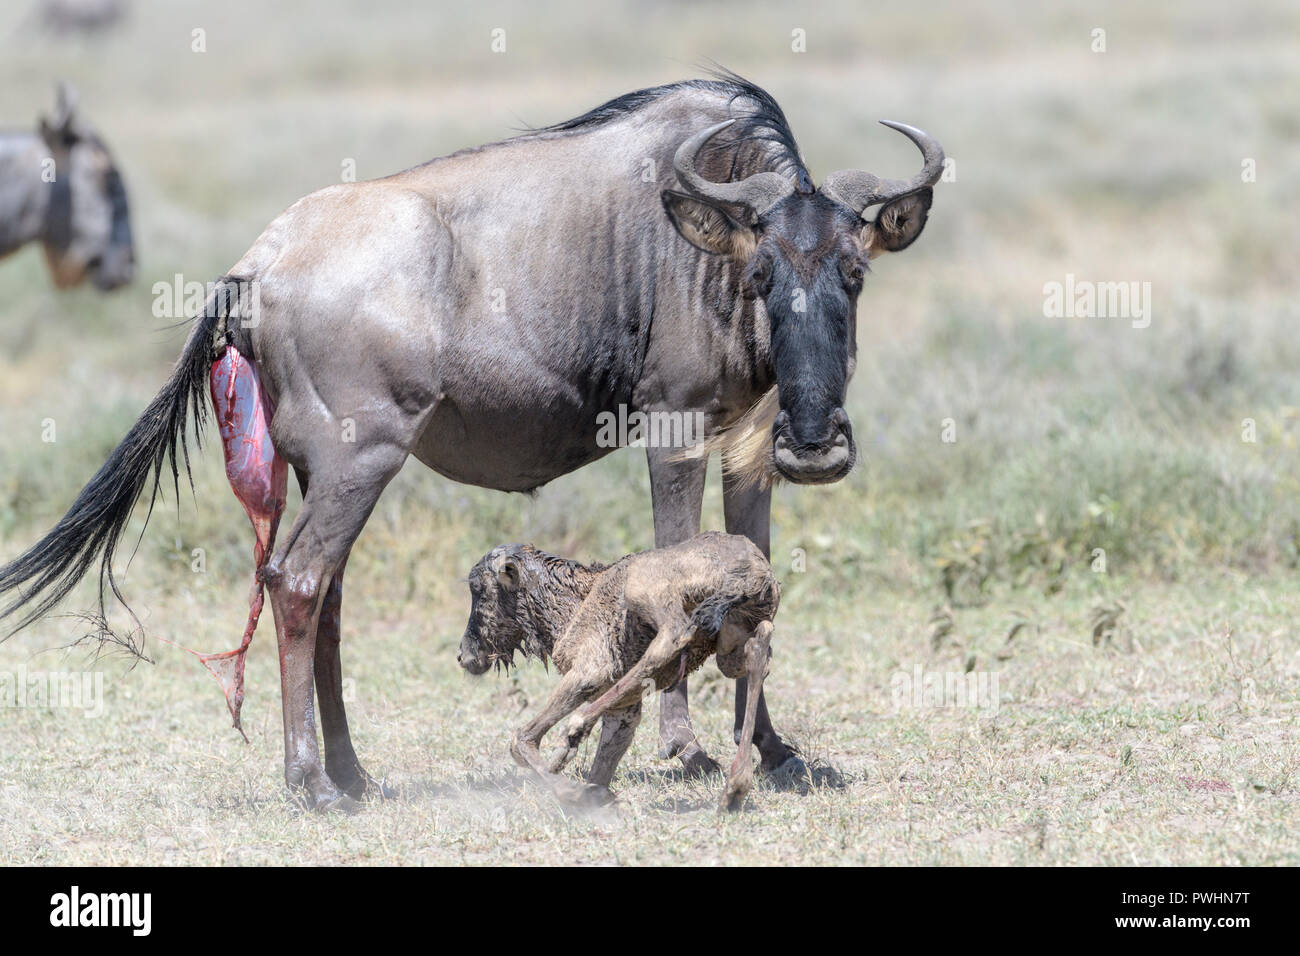 Blue Wildebeest (Connochaetes taurinus) mother with a new born calf trying to stand on savanna, Ngorongoro conservation area, Tanzania. - Stock Image